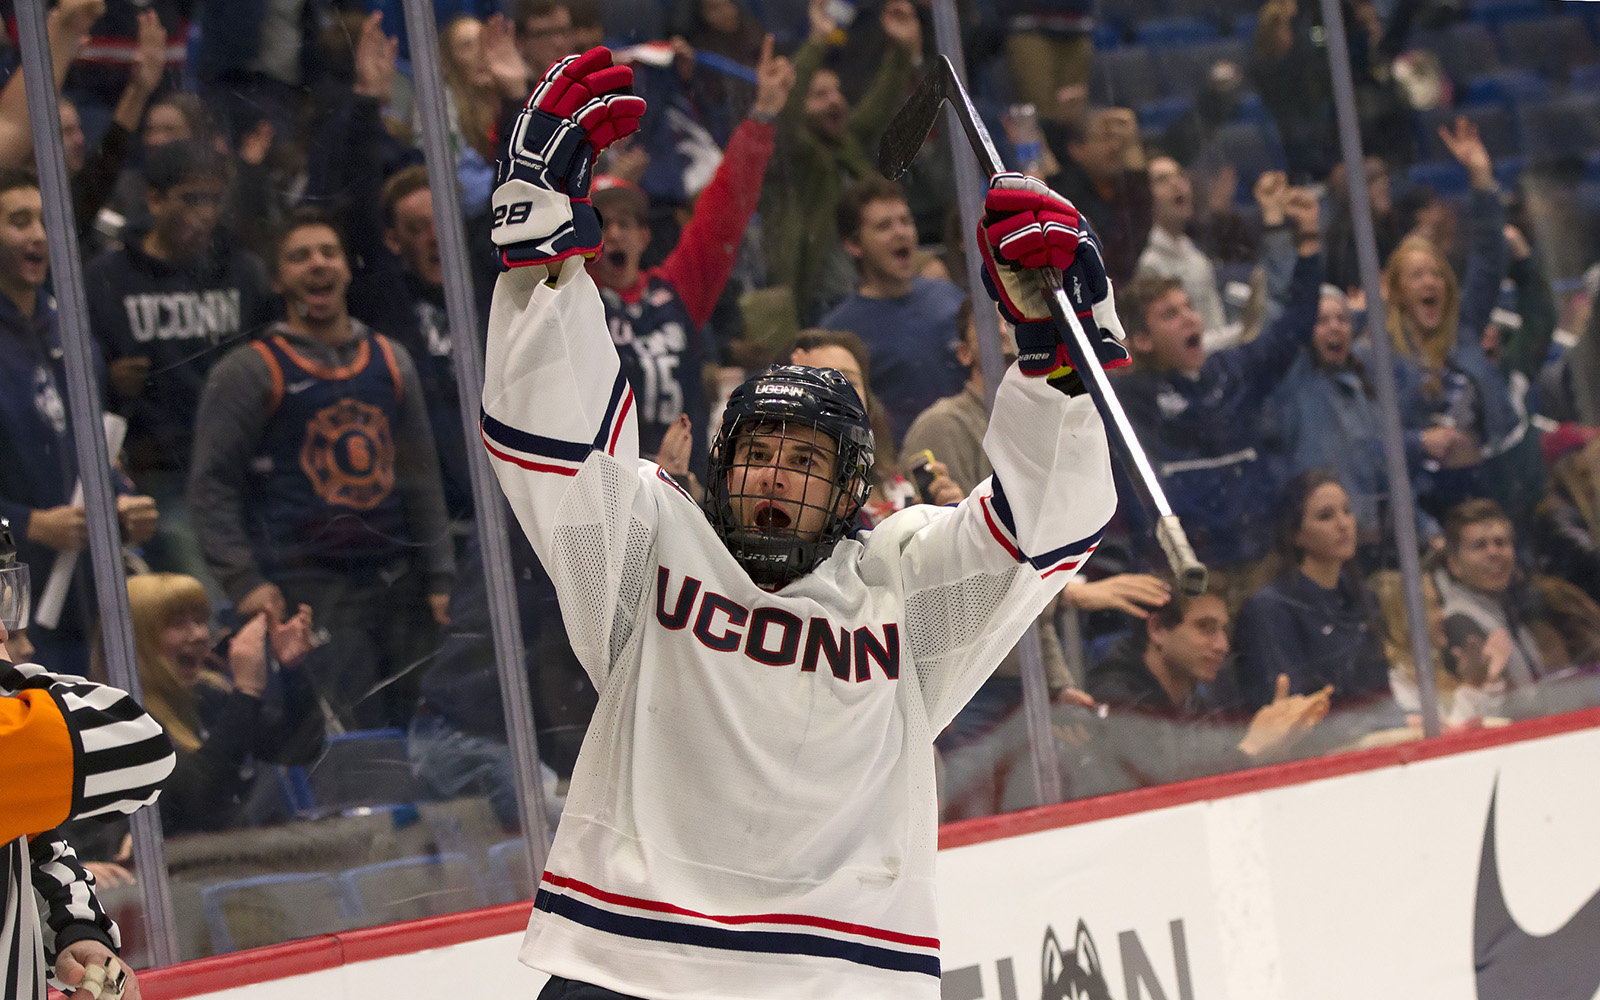 Karl El-Mir '19 follows an intense schedule on and off the ice - and it pays off. (Courtesy UConn Athletics)